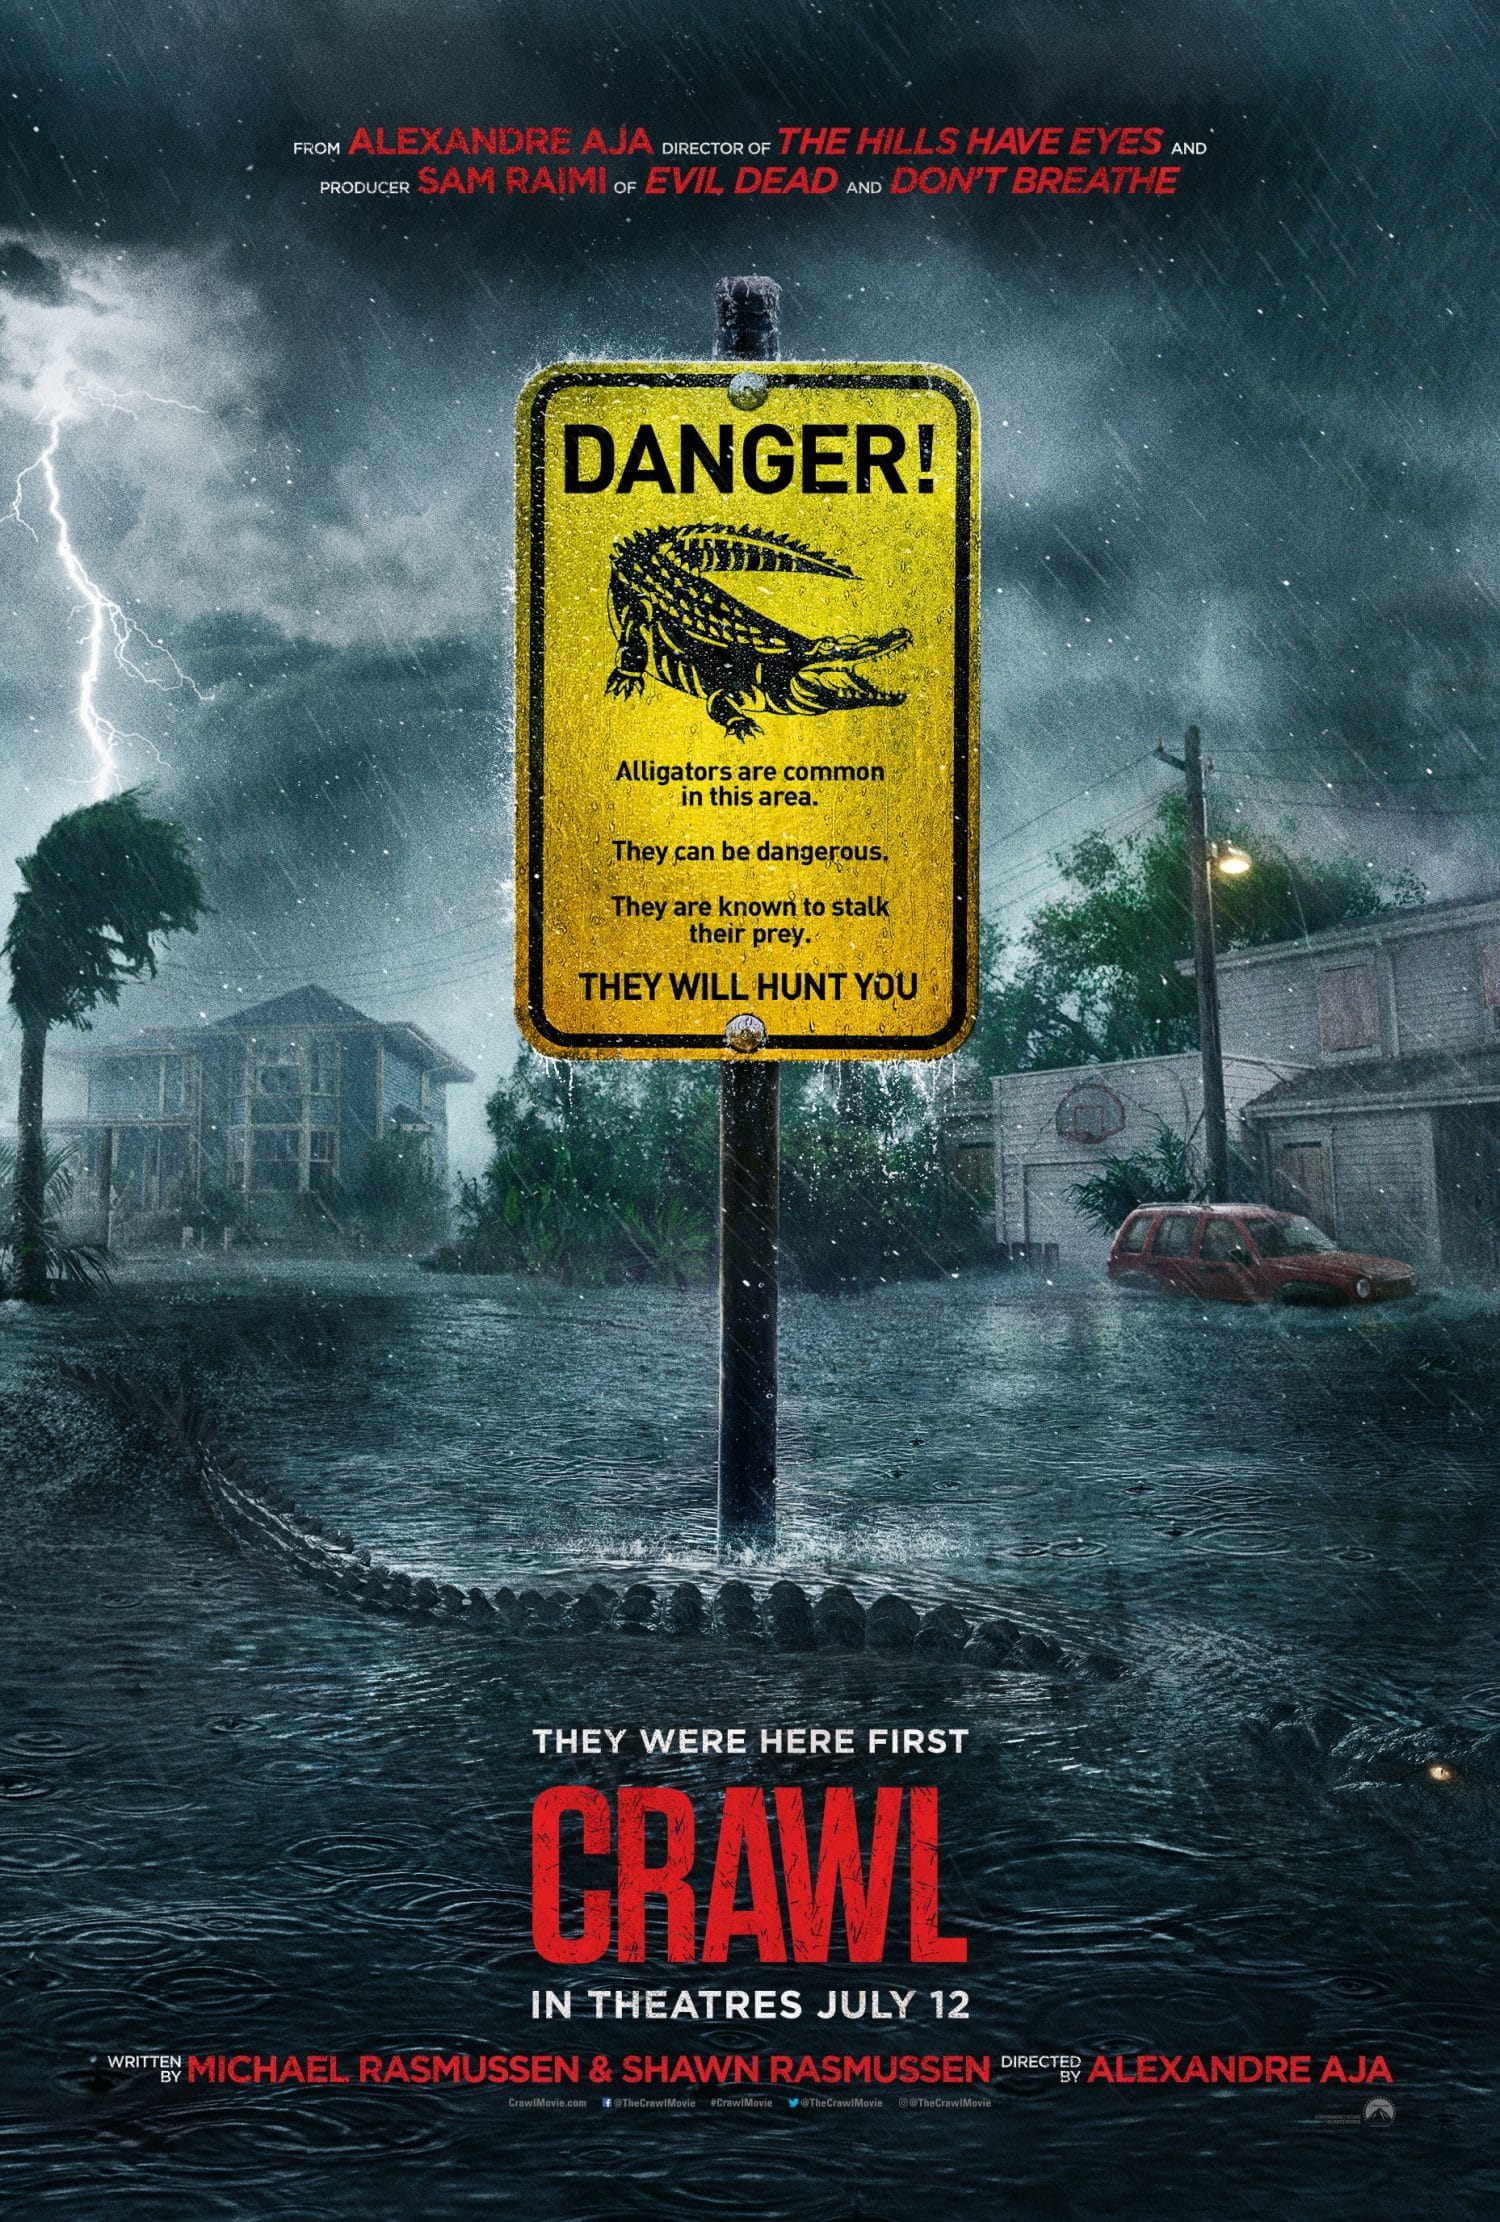 Watch the Crawl movie trailer for a look at the killer alligator thriller.